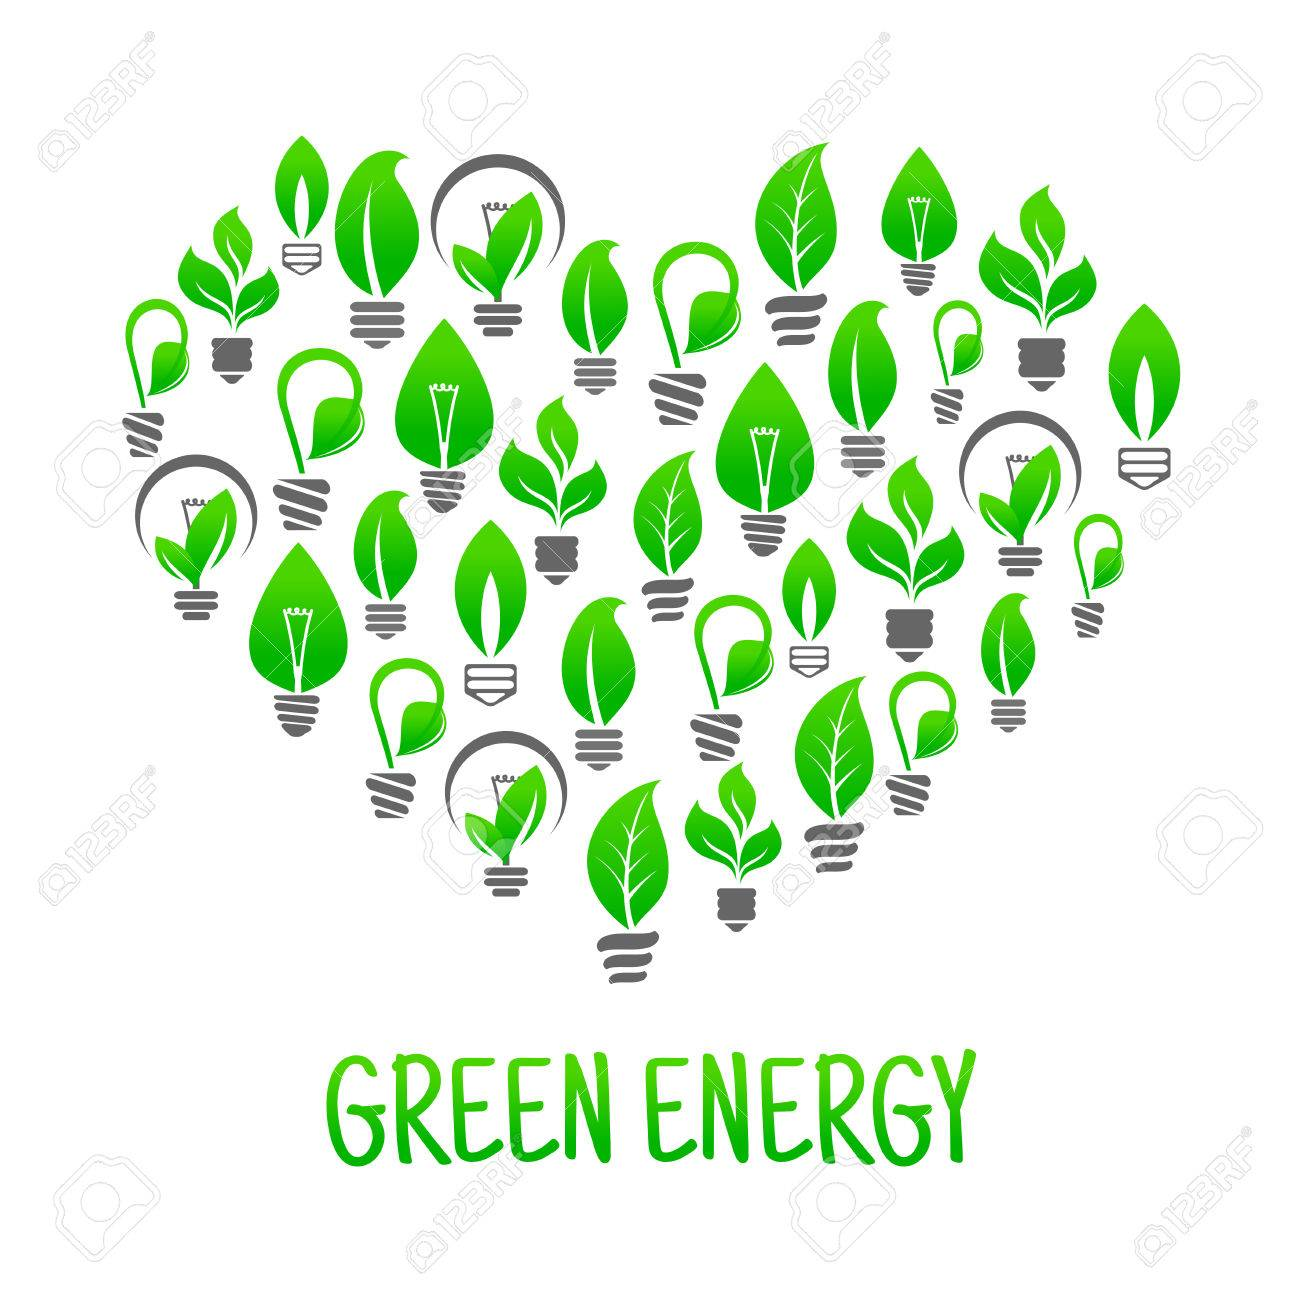 Green Energy Heart Abstract Symbol With Ecology Friendly Light